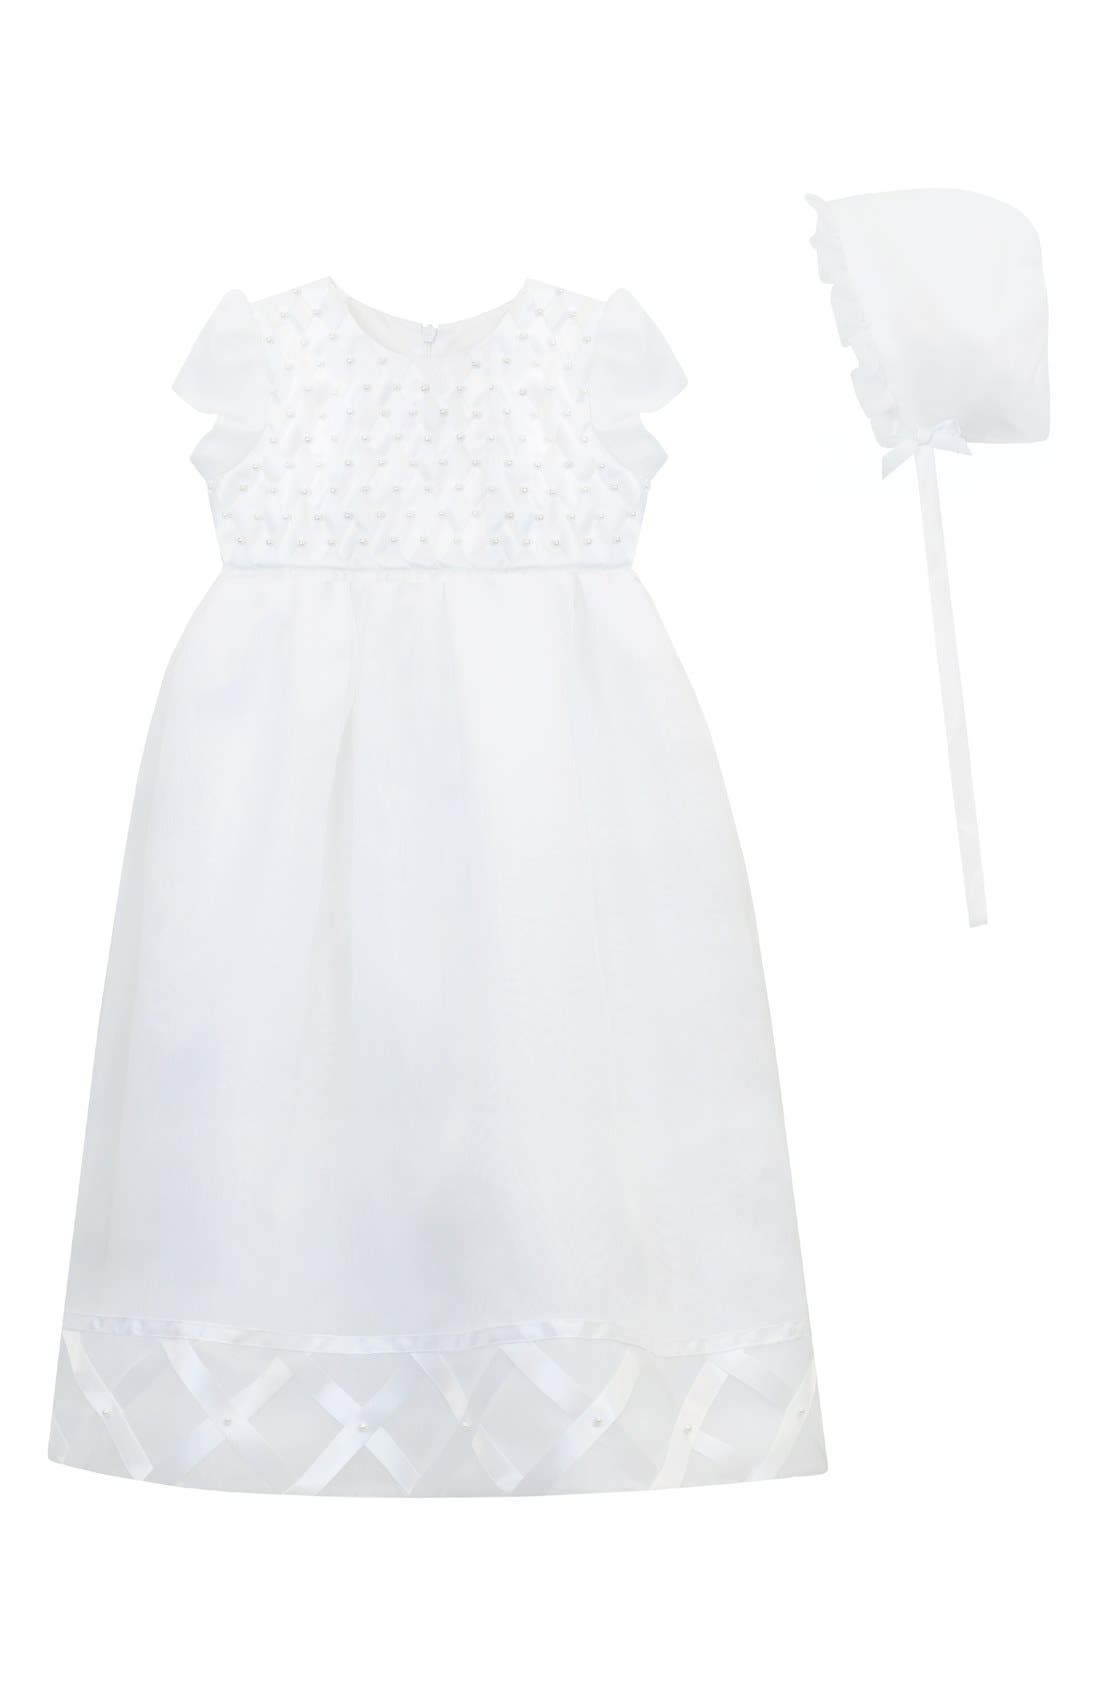 C.I. CASTRO & CO. Christening Gown & Bonnet, Main, color, WHITE